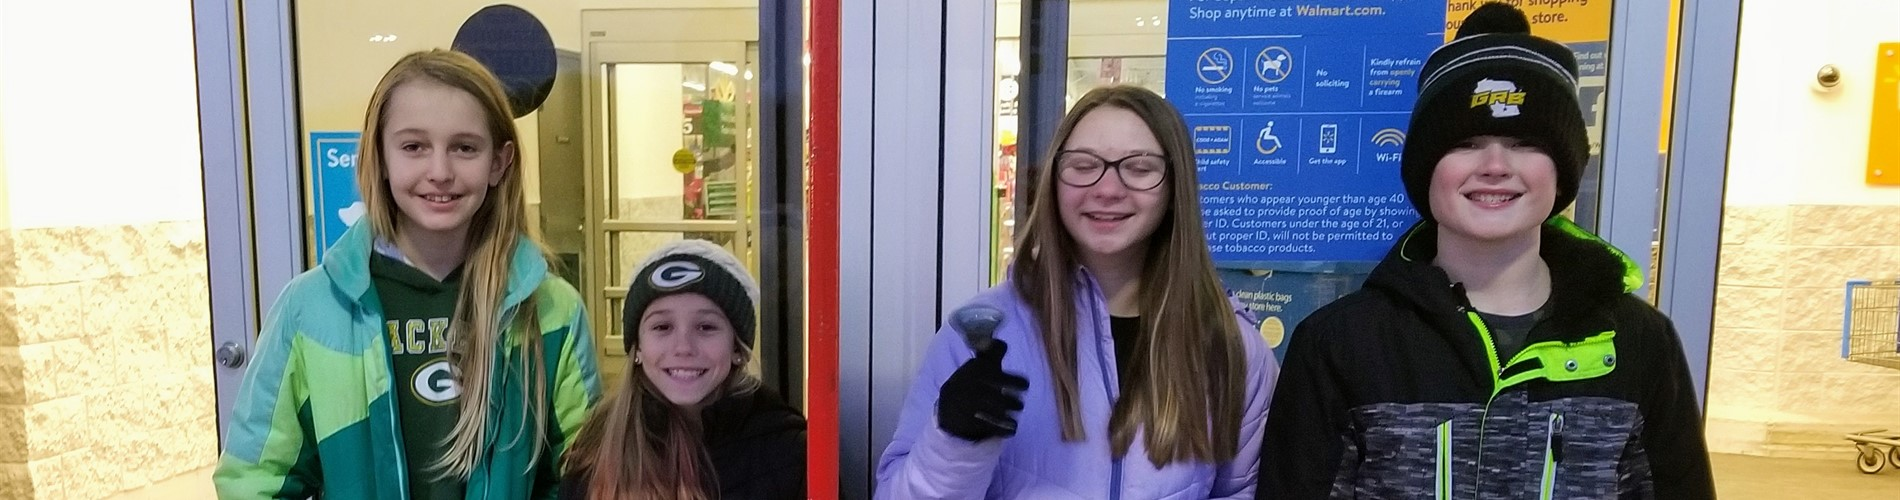 Ringing Bells to Help Others